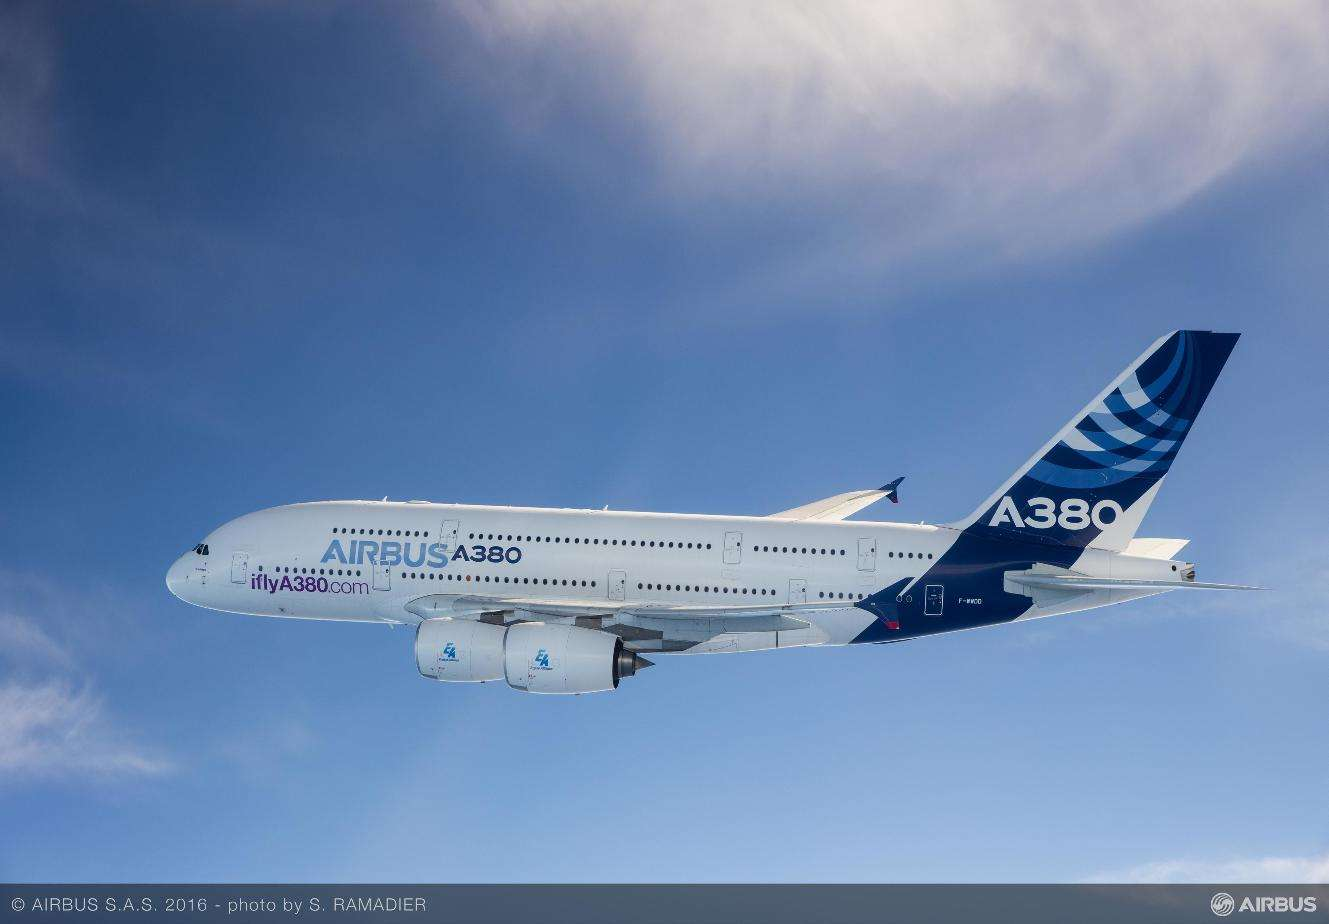 Two A380s head for the museum